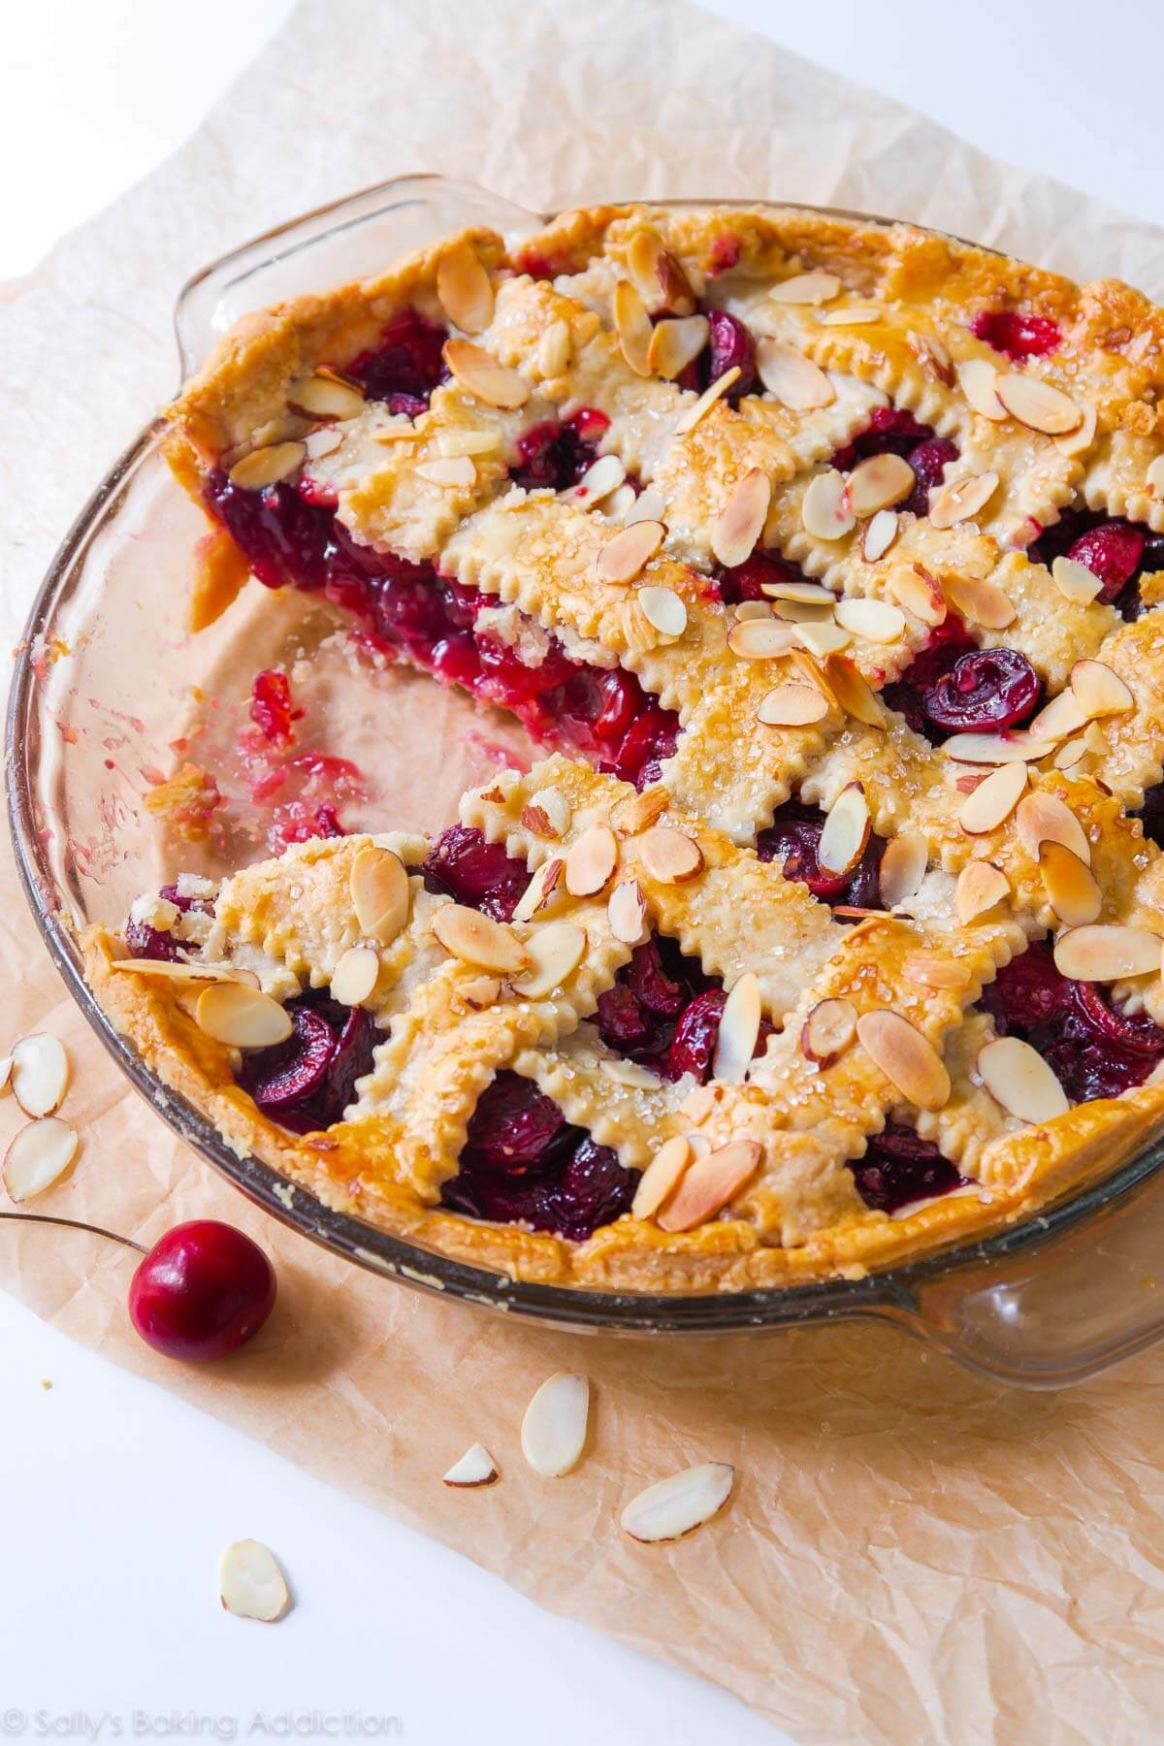 Sweet Cherry Pie with Toasted Almonds